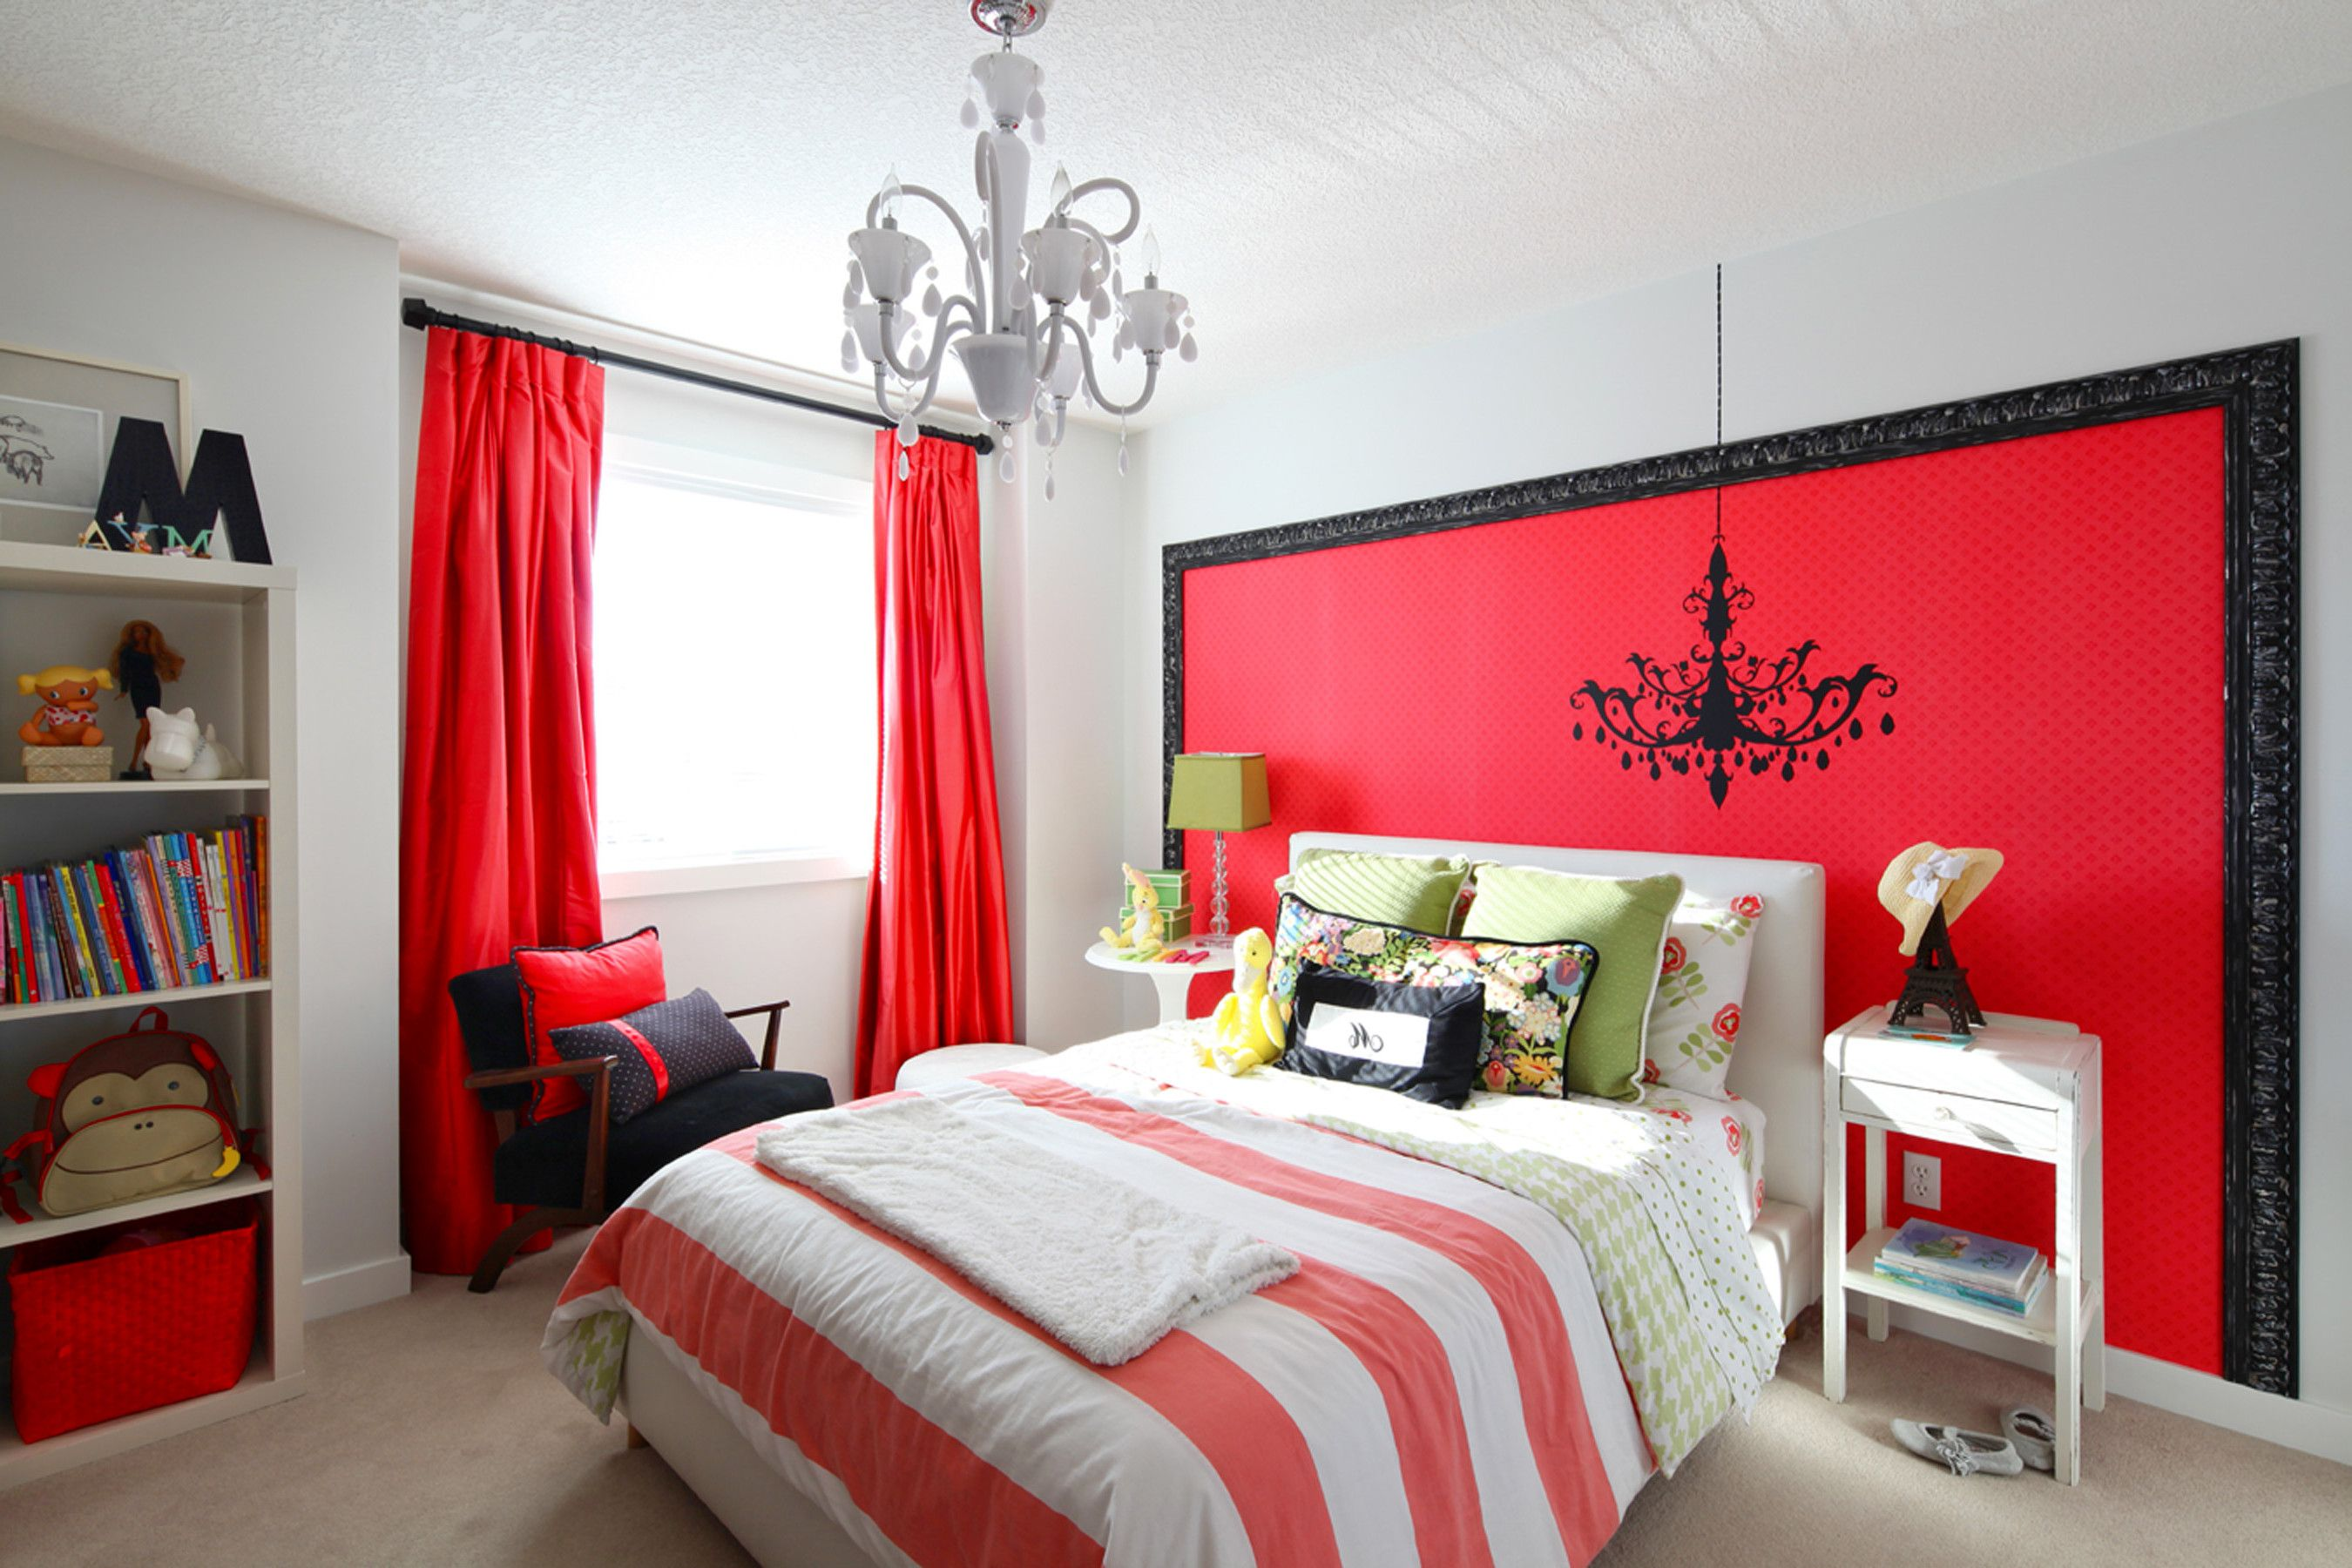 Vibrant Red Girls Rooms Theme In White Walls Light Gray And Pretty French Bedroom Decor Bedroom Red Girl Bedroom Decor